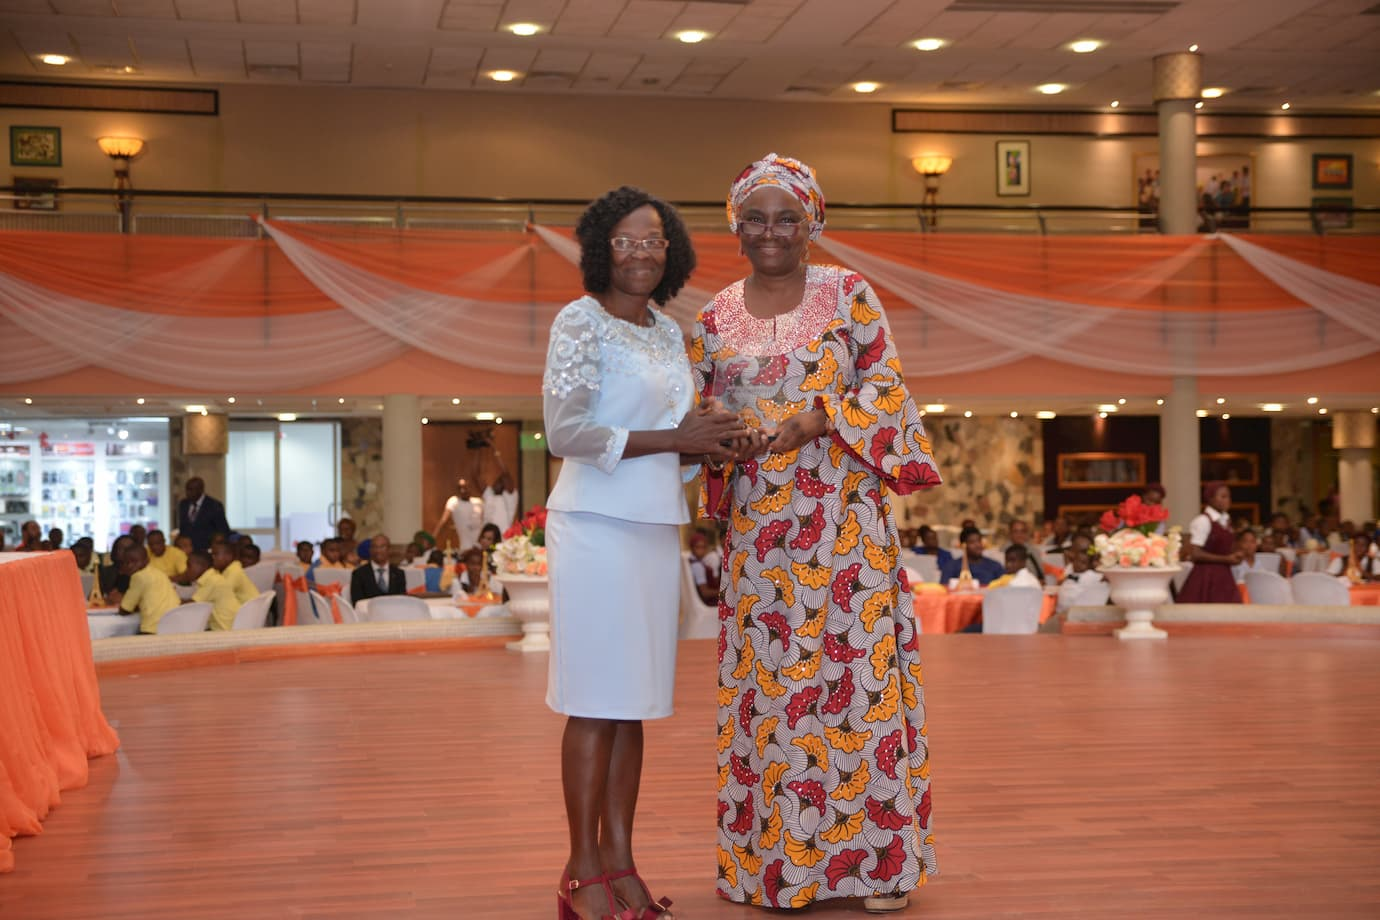 Mrs. Glory Ukpong presenting the Best Principal's Award onbehalf of Bassey Ukpong Udo Foundation to the winner Mrs. Elizabeth U. Michael of Holy Trinity College, Mbiakong Uruan